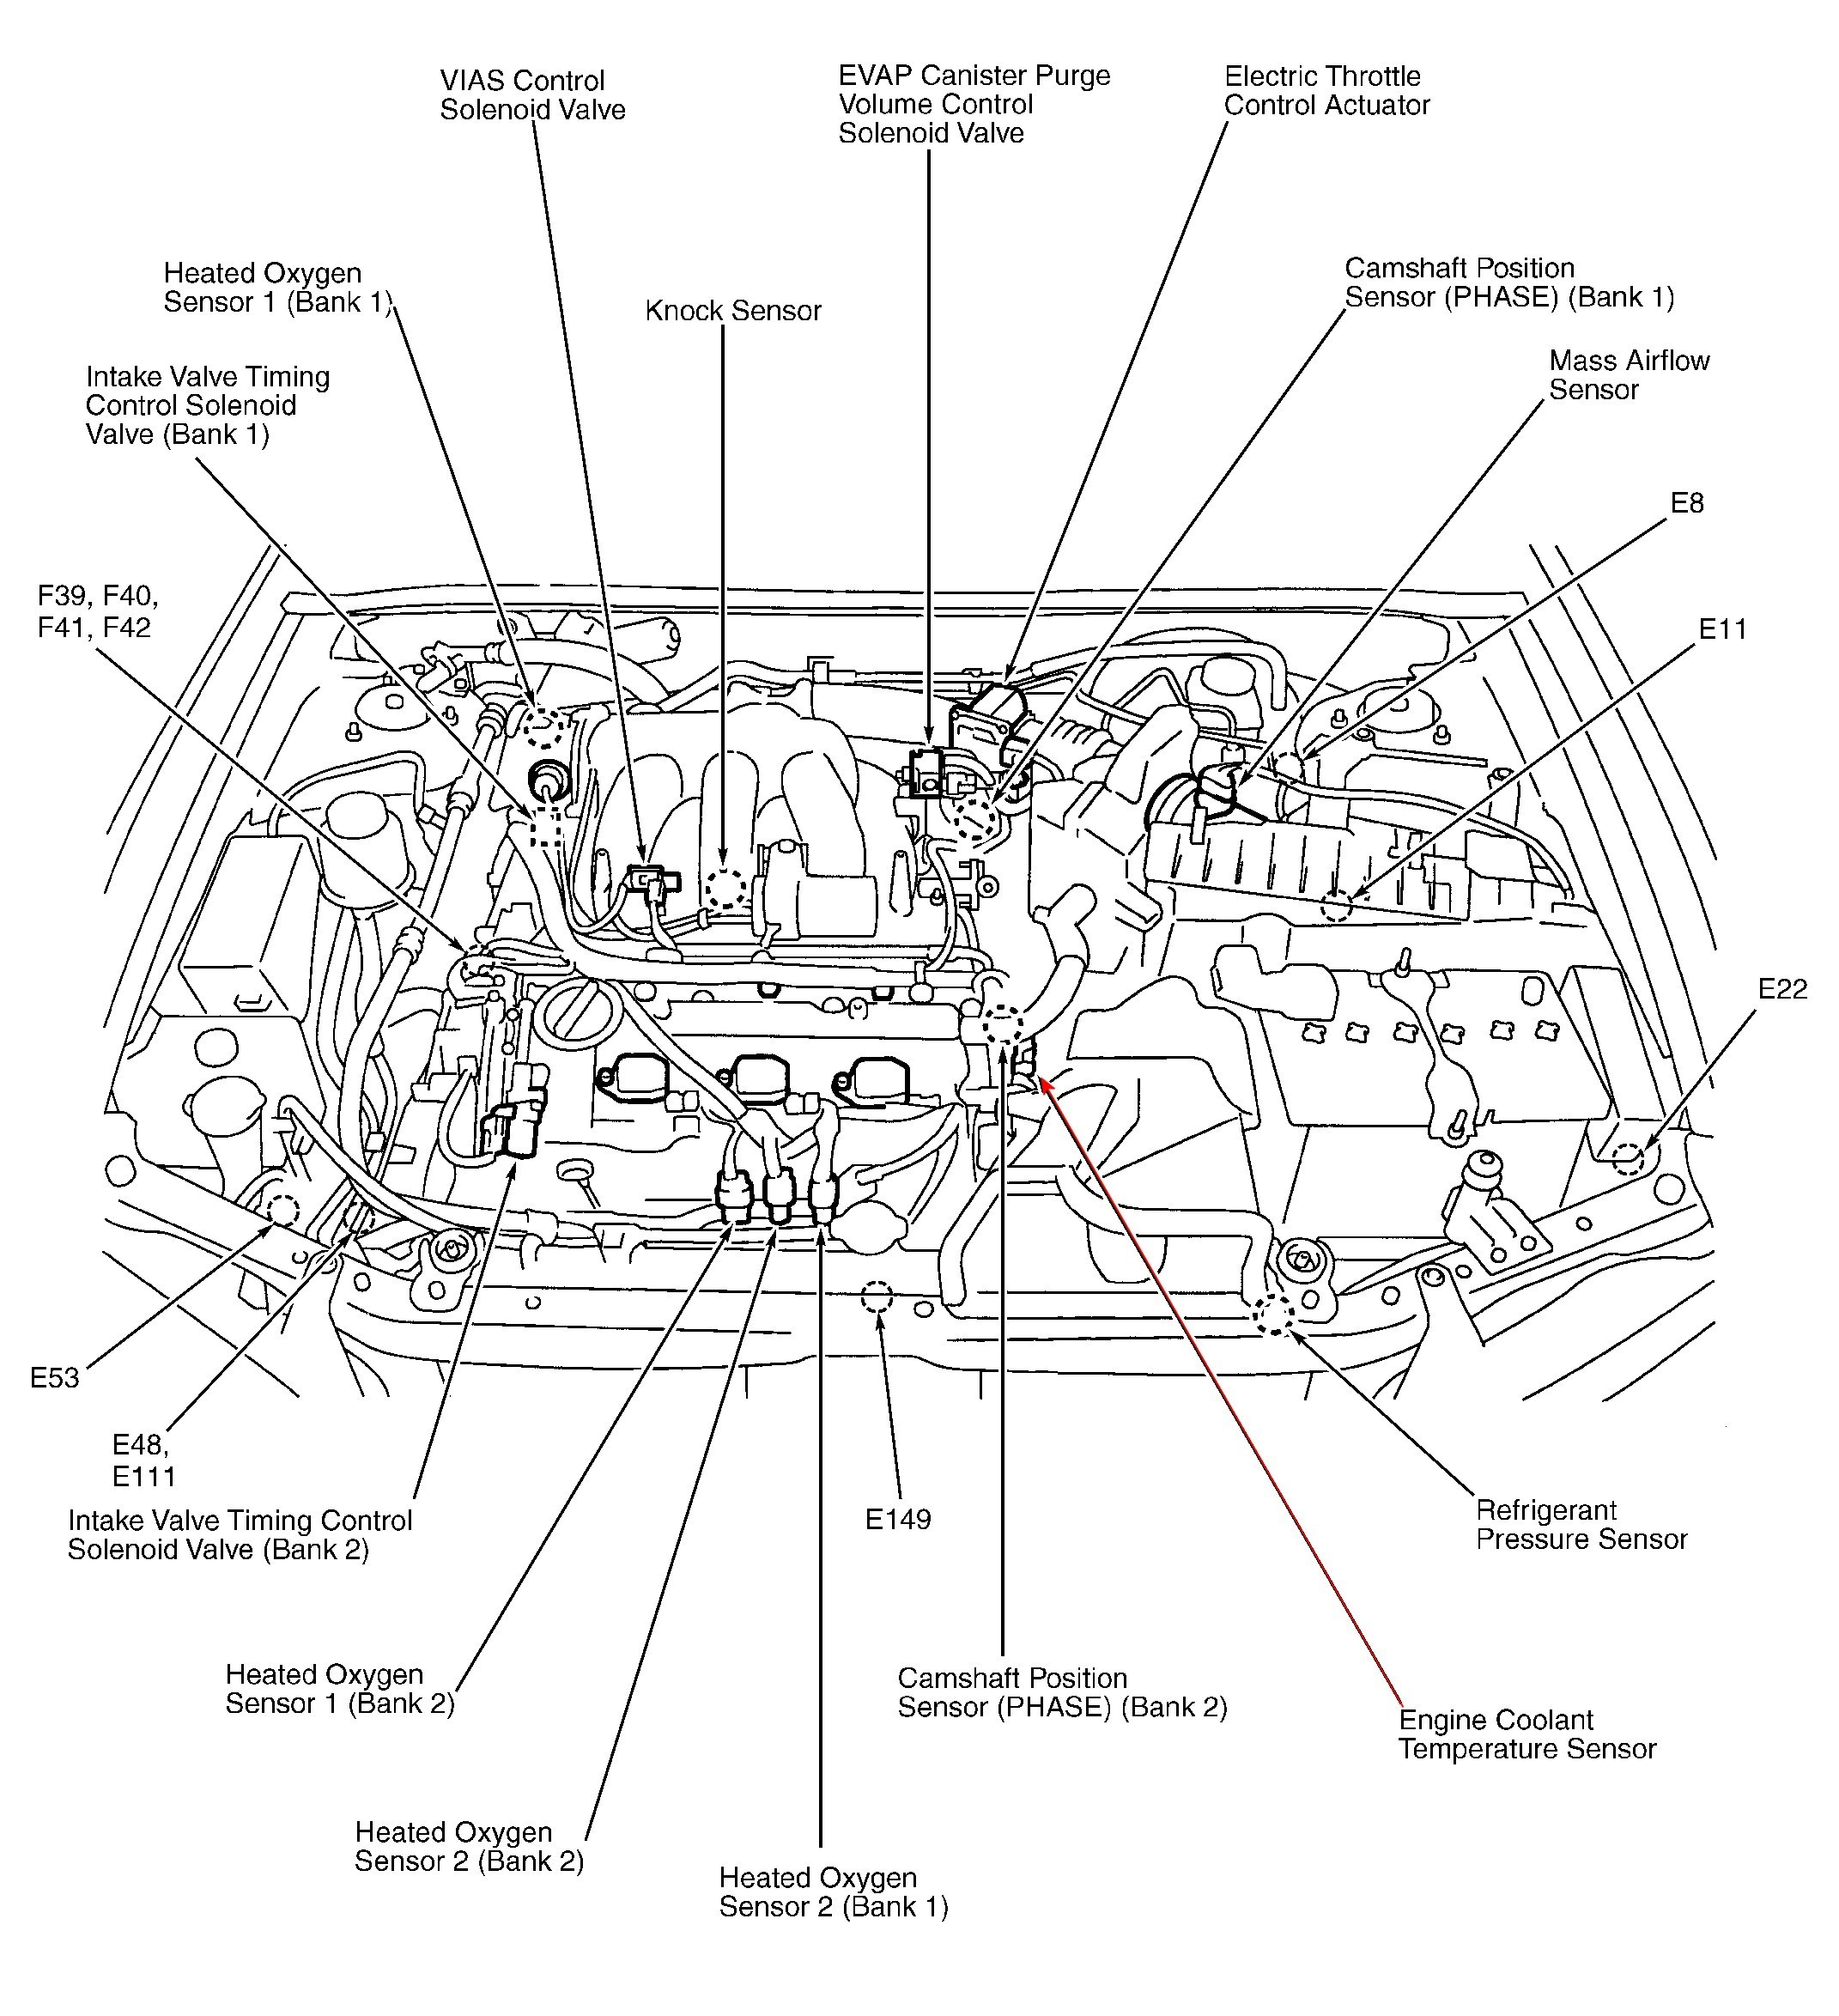 Under The Car Hood Diagram Car Parts Labeled Diagram Car Parts Diagram Under Hood Car Diagram Of Under The Car Hood Diagram on 2001 Pt Cruiser Radio Wiring Diagram